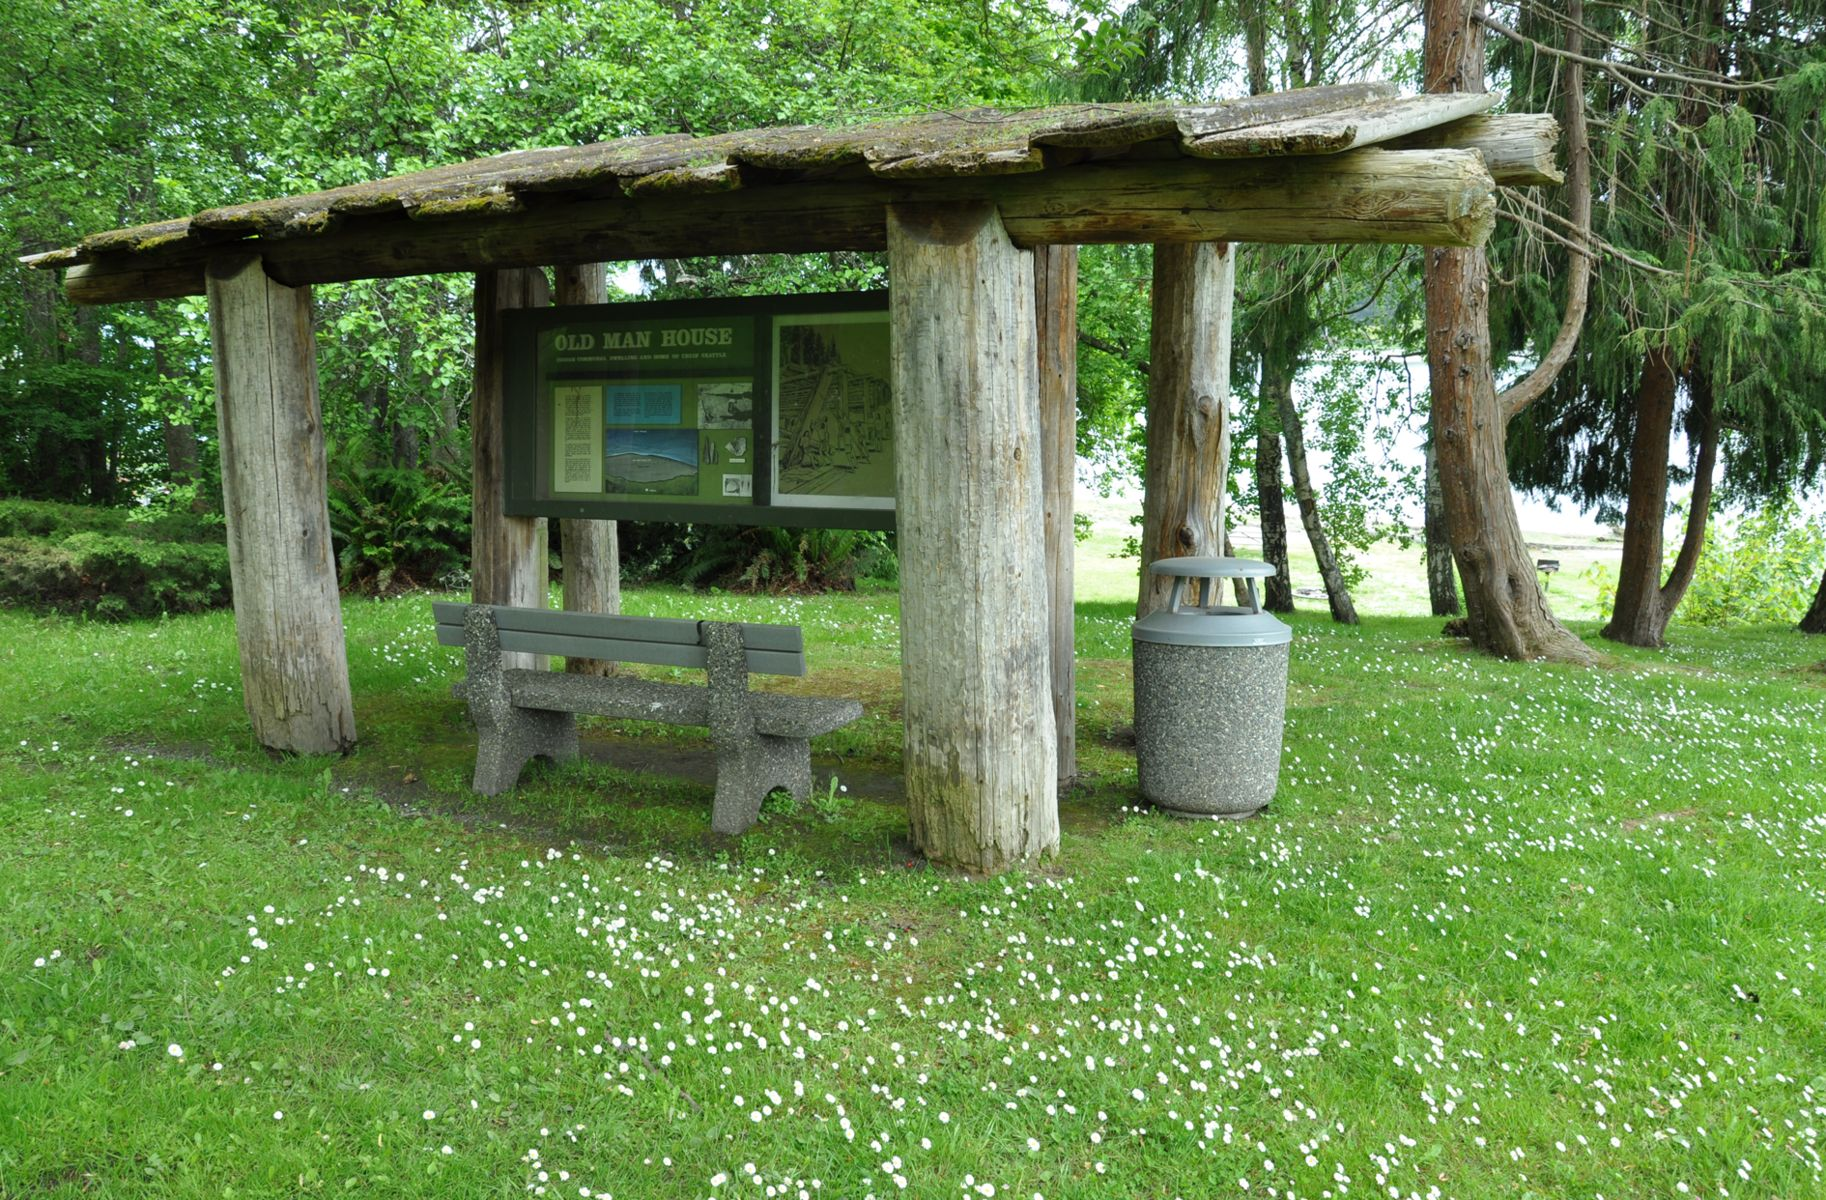 Open-sided timber shelter houses a bench and park information.